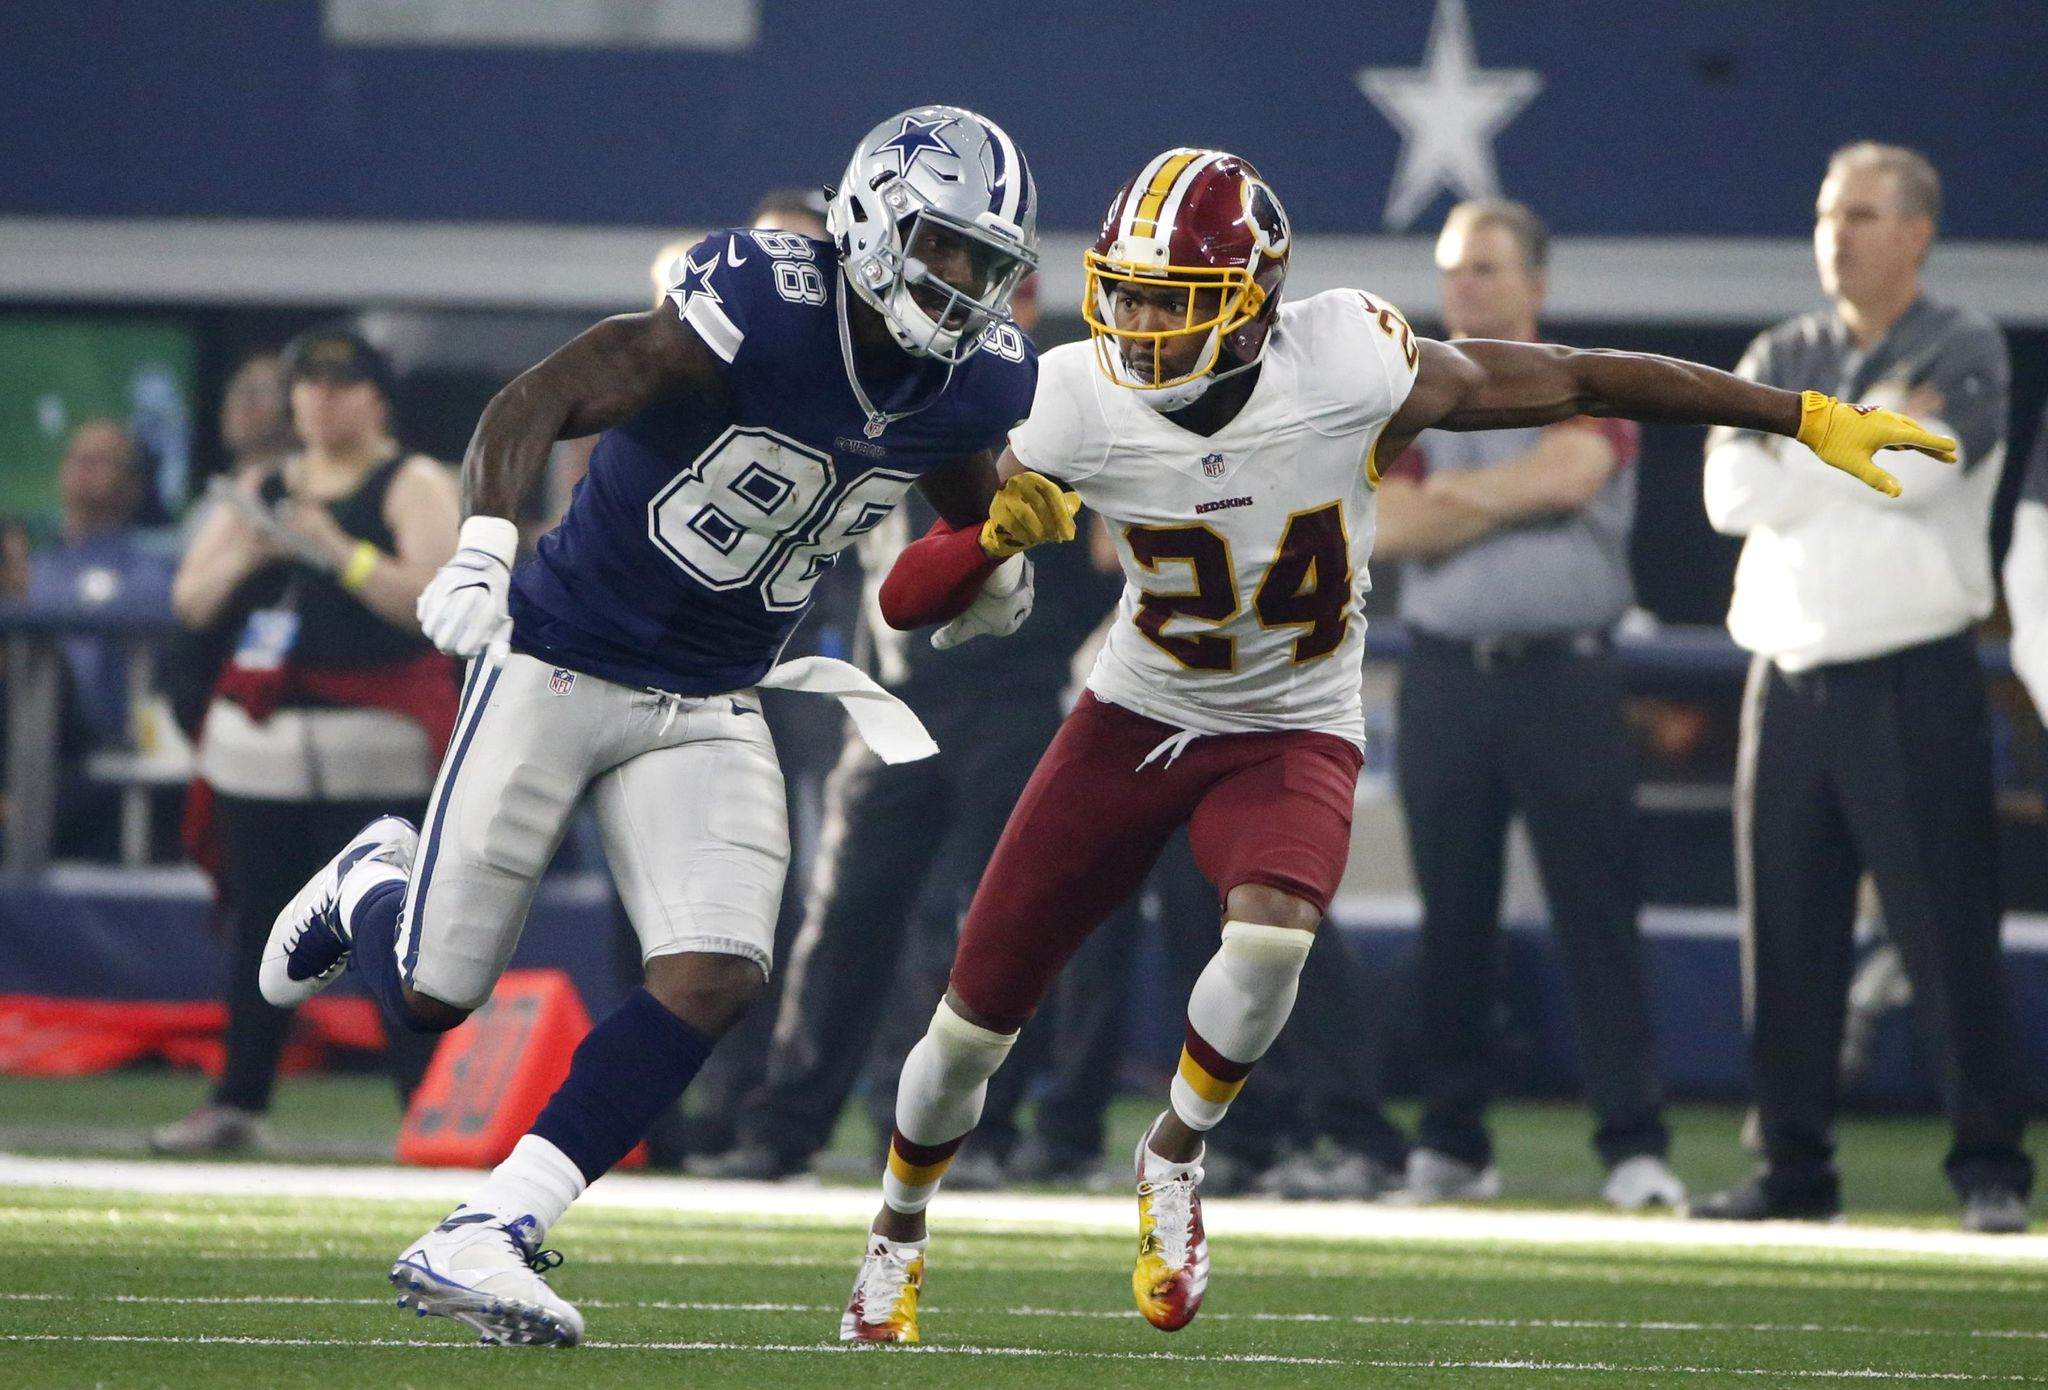 Josh Norman won't miss Dez Bryant when facing Cowboys - Washington Times